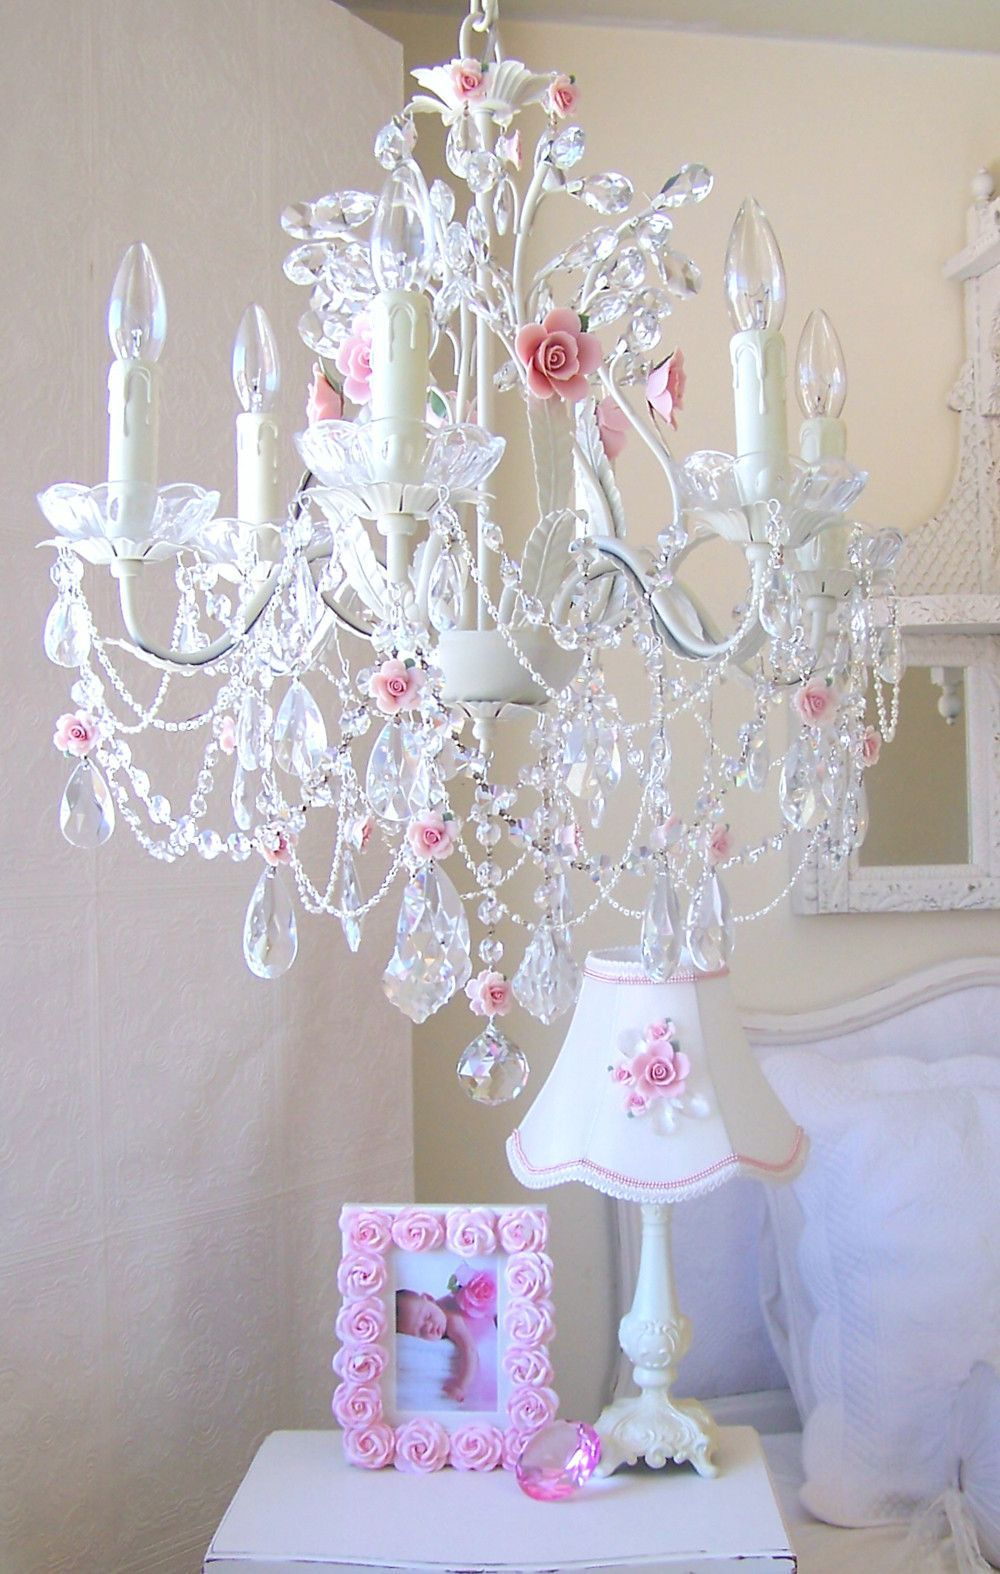 5 Light Antique White Chandelier With Pink Rose Shades With